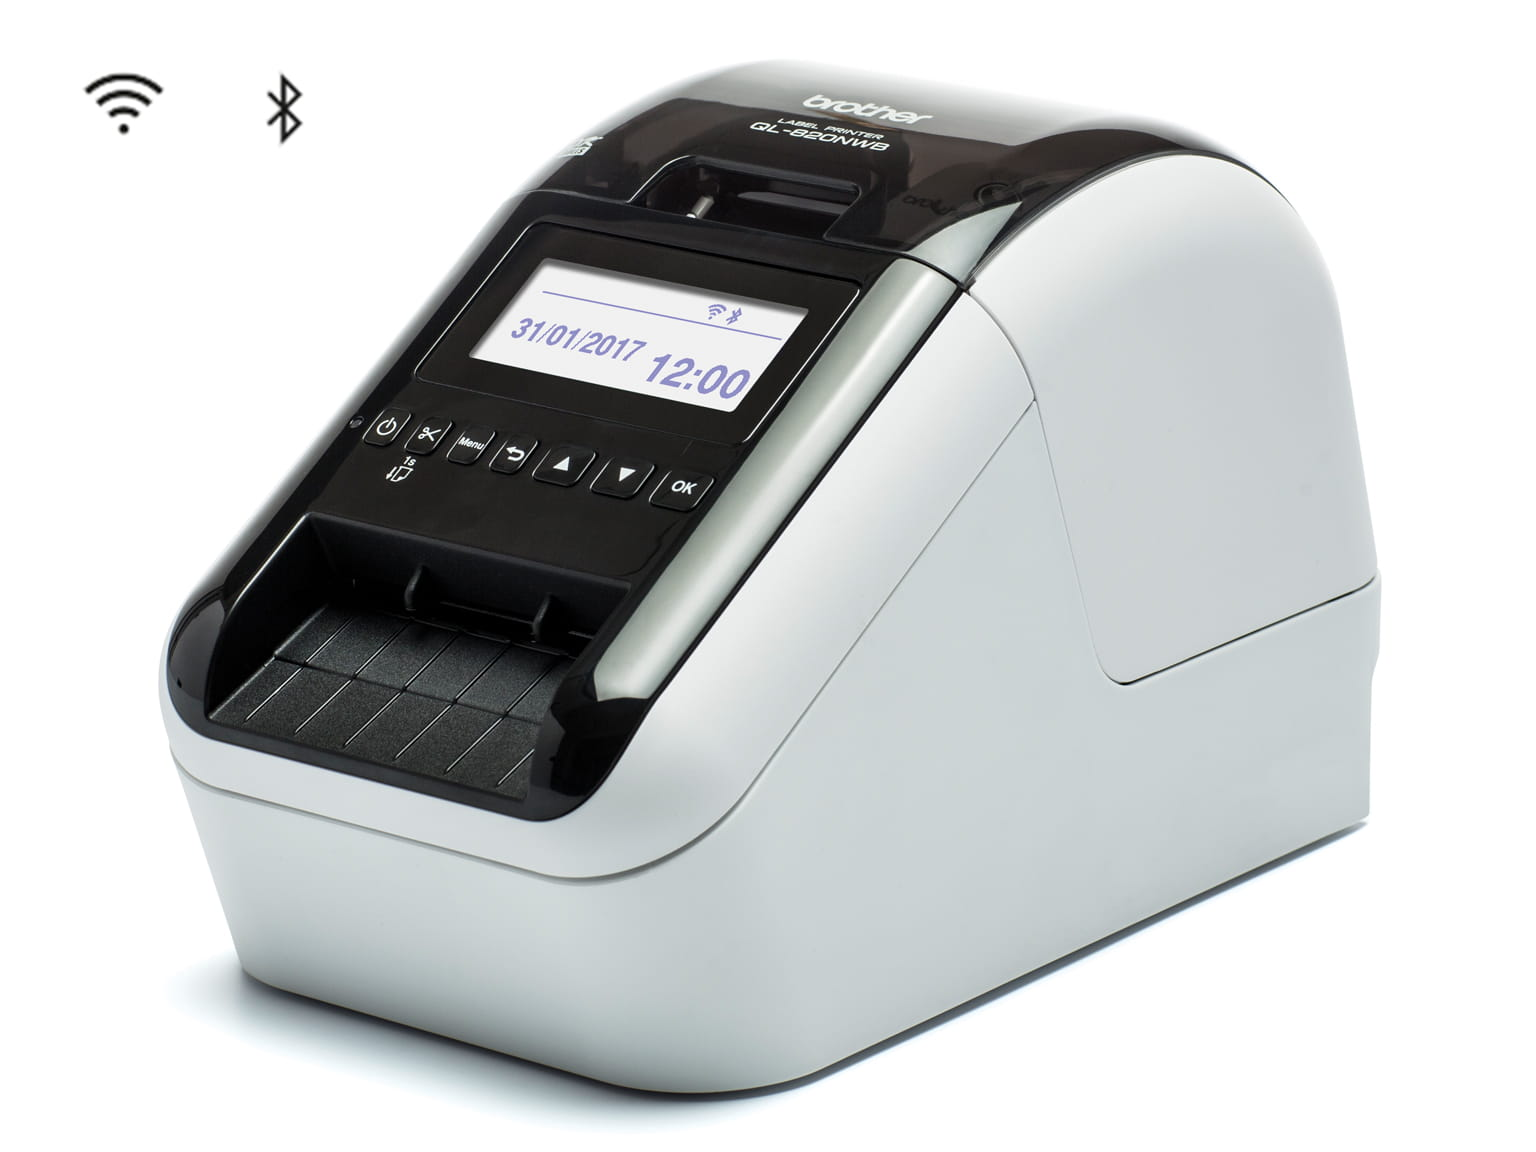 QL-820NWB Brother Label Printer